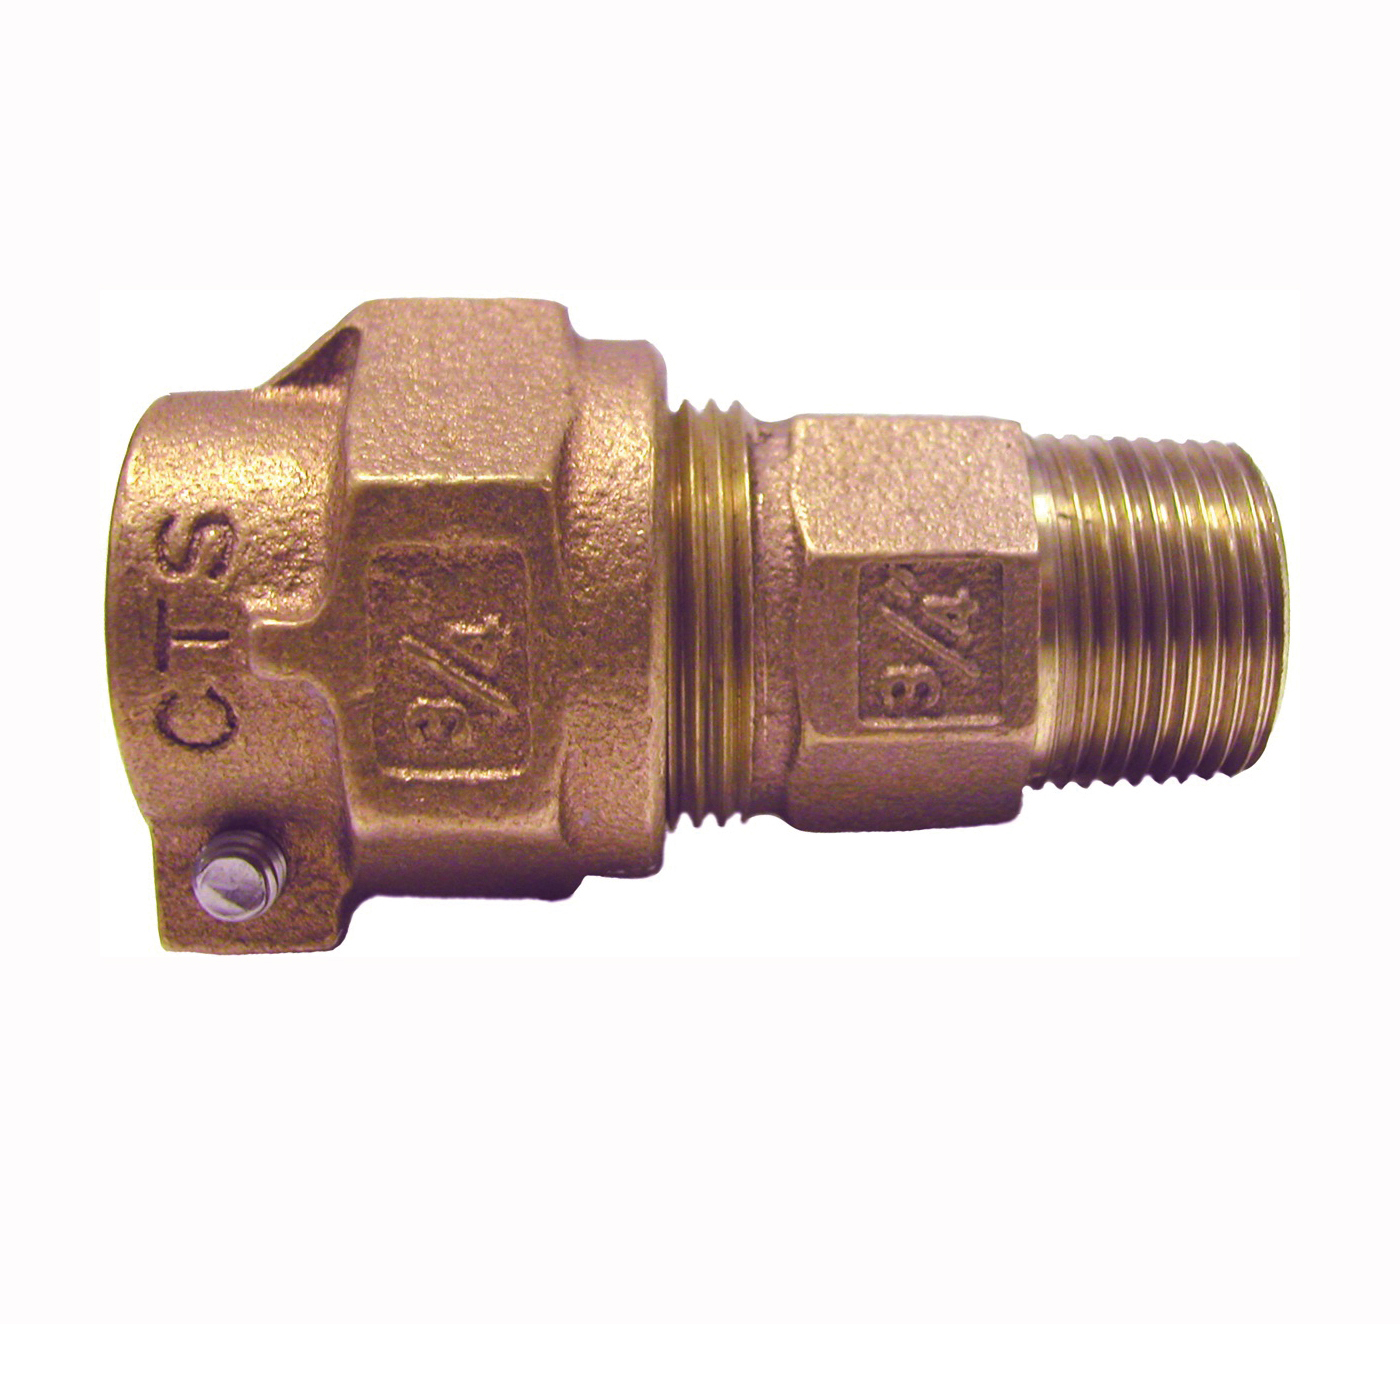 Picture of Legend T-4300NL Series 313-209NL Connector, 3/4 in Pack-Joint CTS, 1 in MNPT